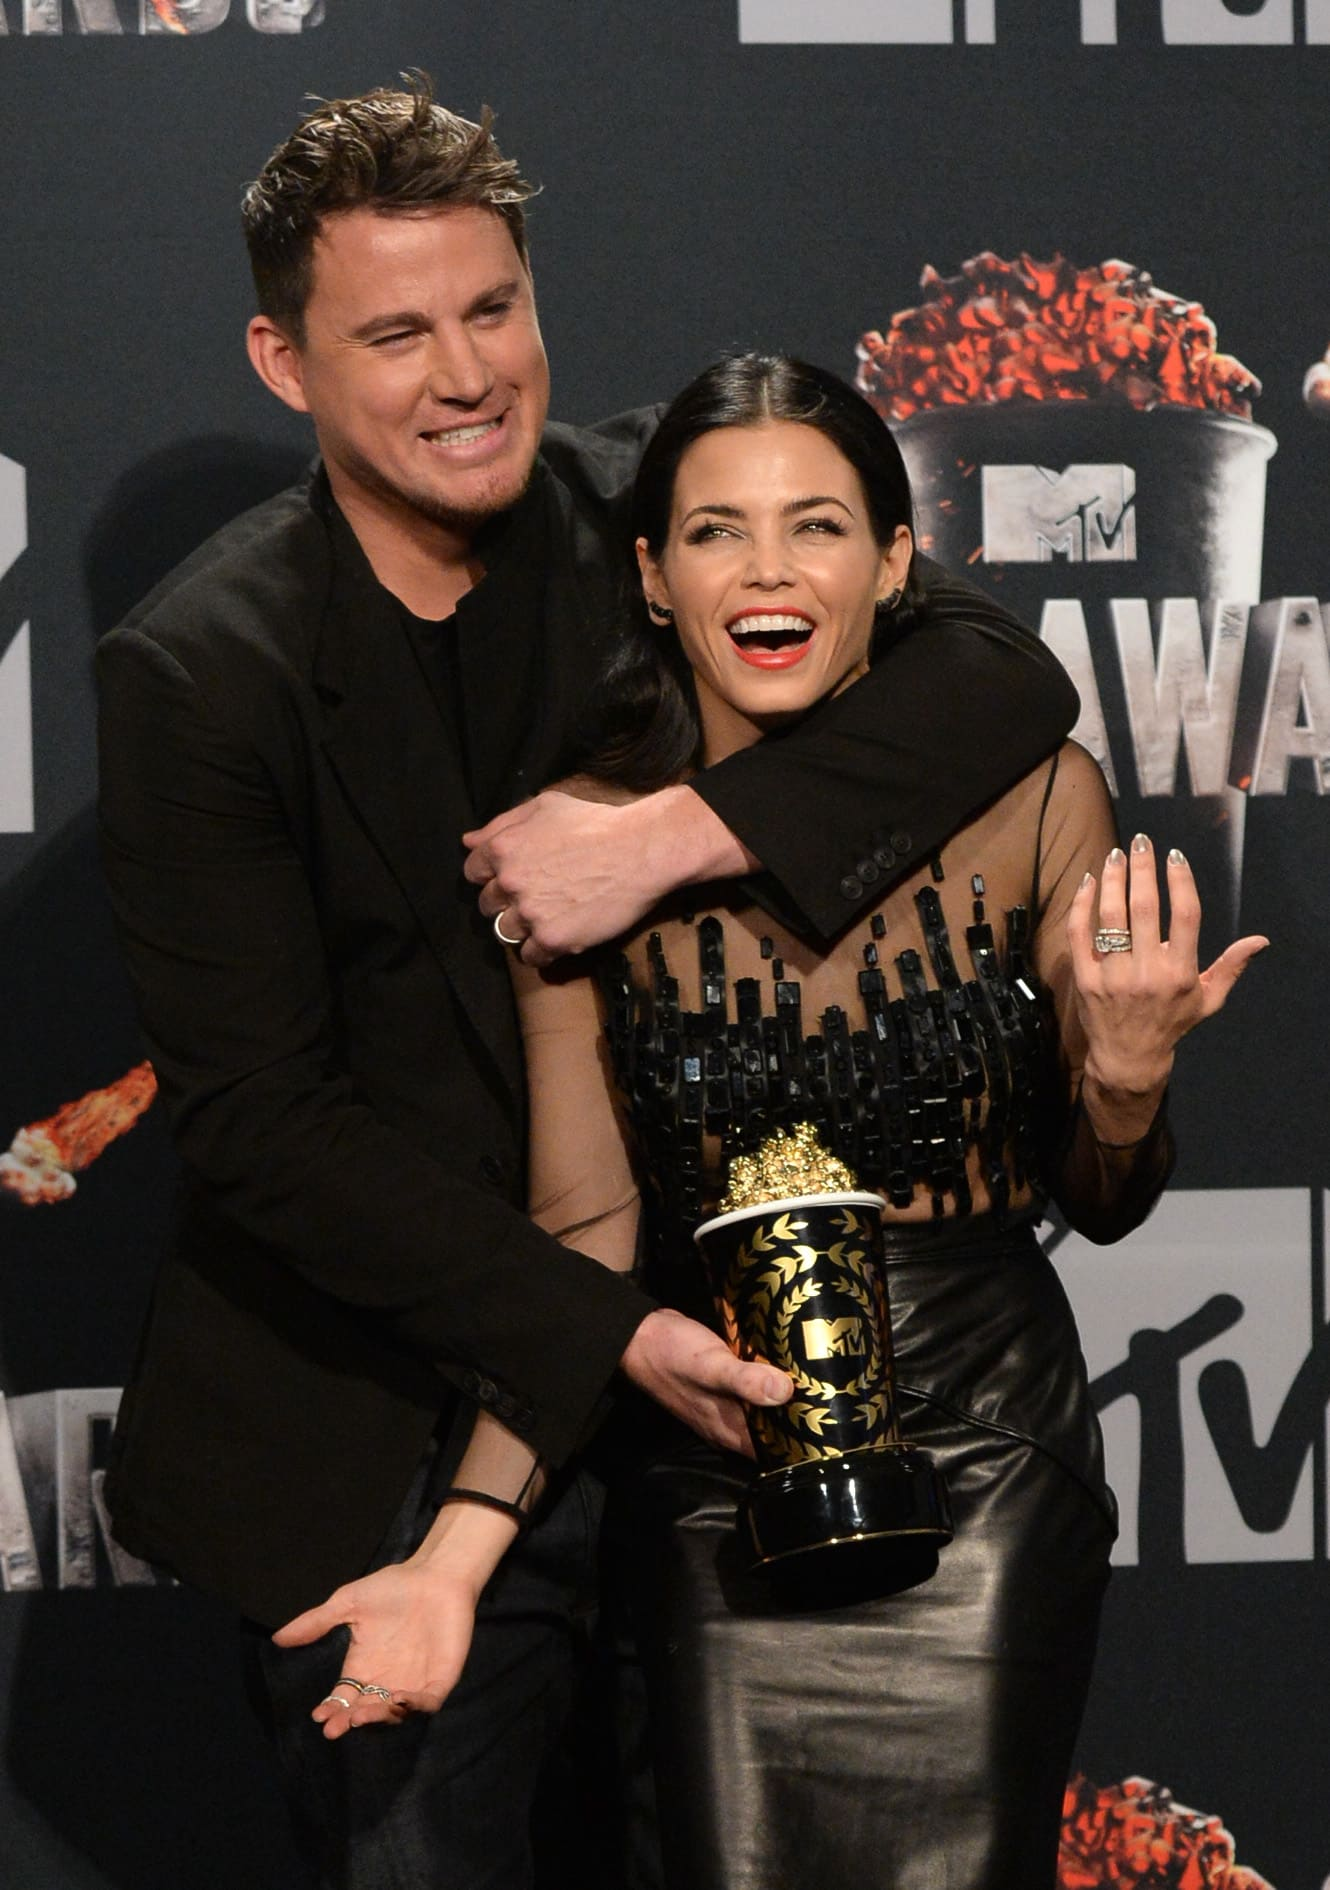 Channing Tatum and Jenna Dewan goofing around at 2014 MTV Movie Awards (Getty Images)